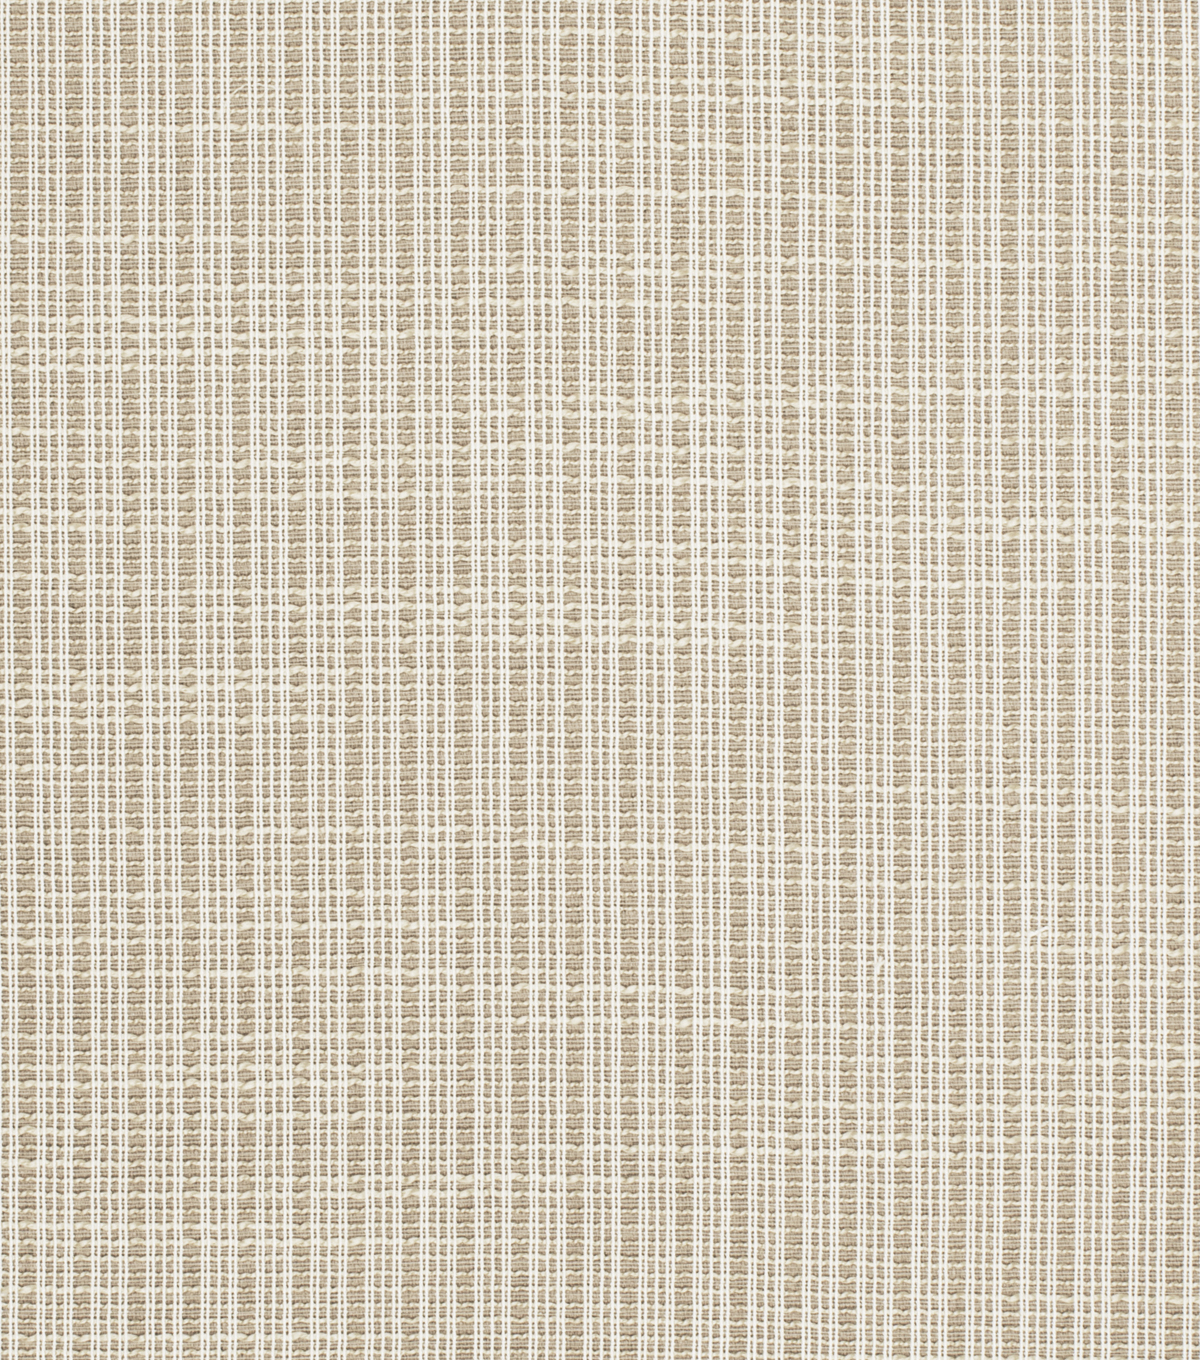 Home Decor 8x8 Fabric Swatch-Swavelle Millcreek Queen Dust